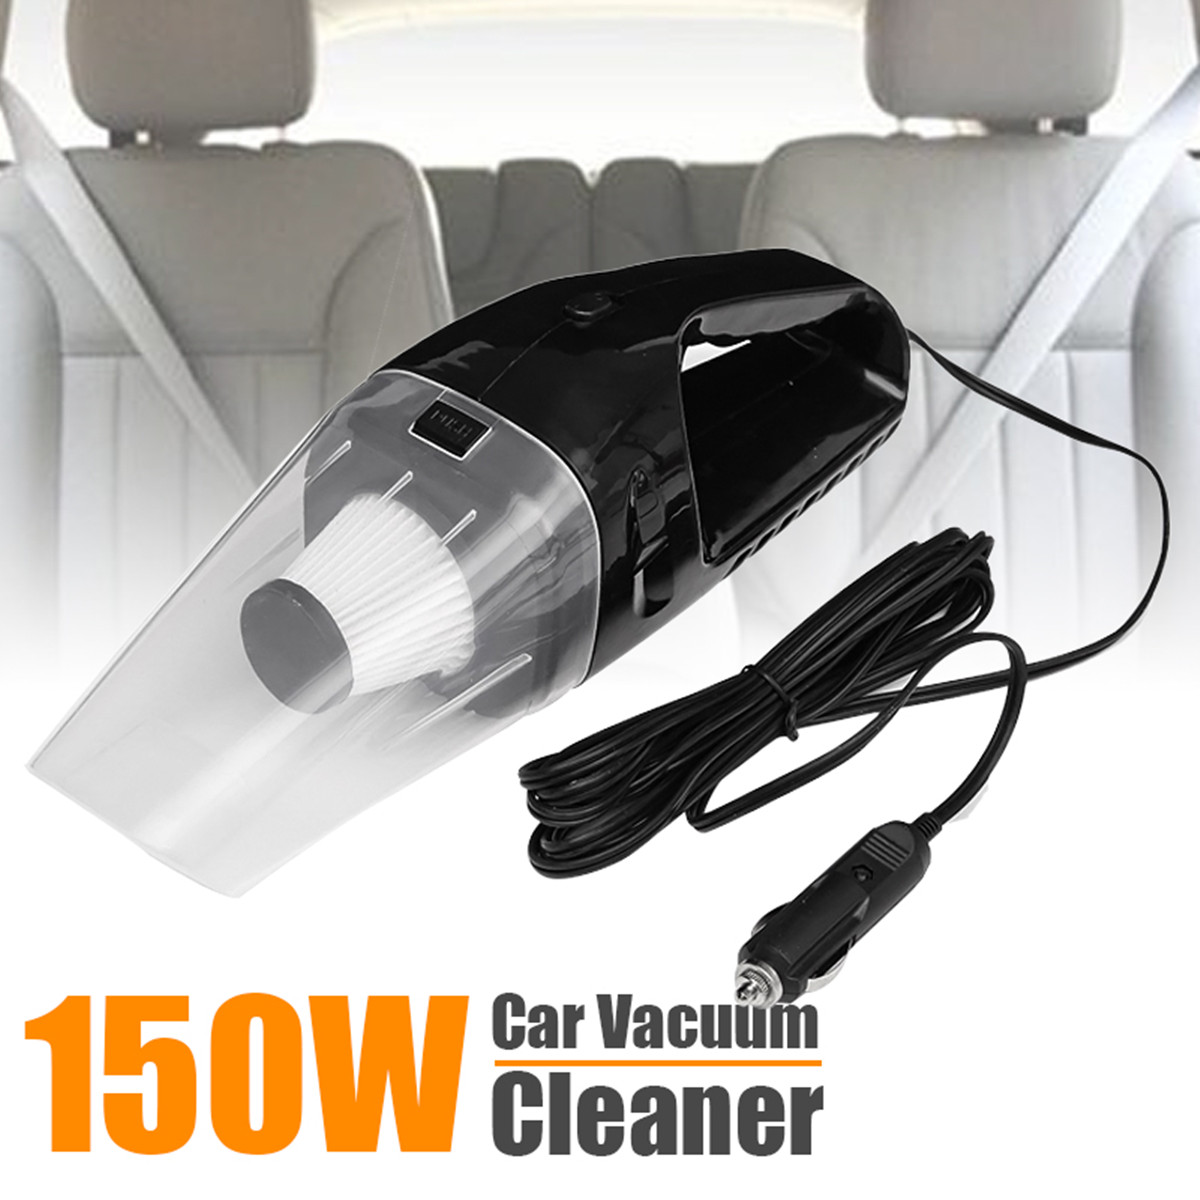 Car Vacuum Cleaner 150W 12V Portable Handheld Auto Vacuum Cleaner Wet Dry Duster Rechargeable Aspirateur Voiture wet and dry vacuum cleaner 80w rechargeable wireless home car vacuum cleaner brush mites killer